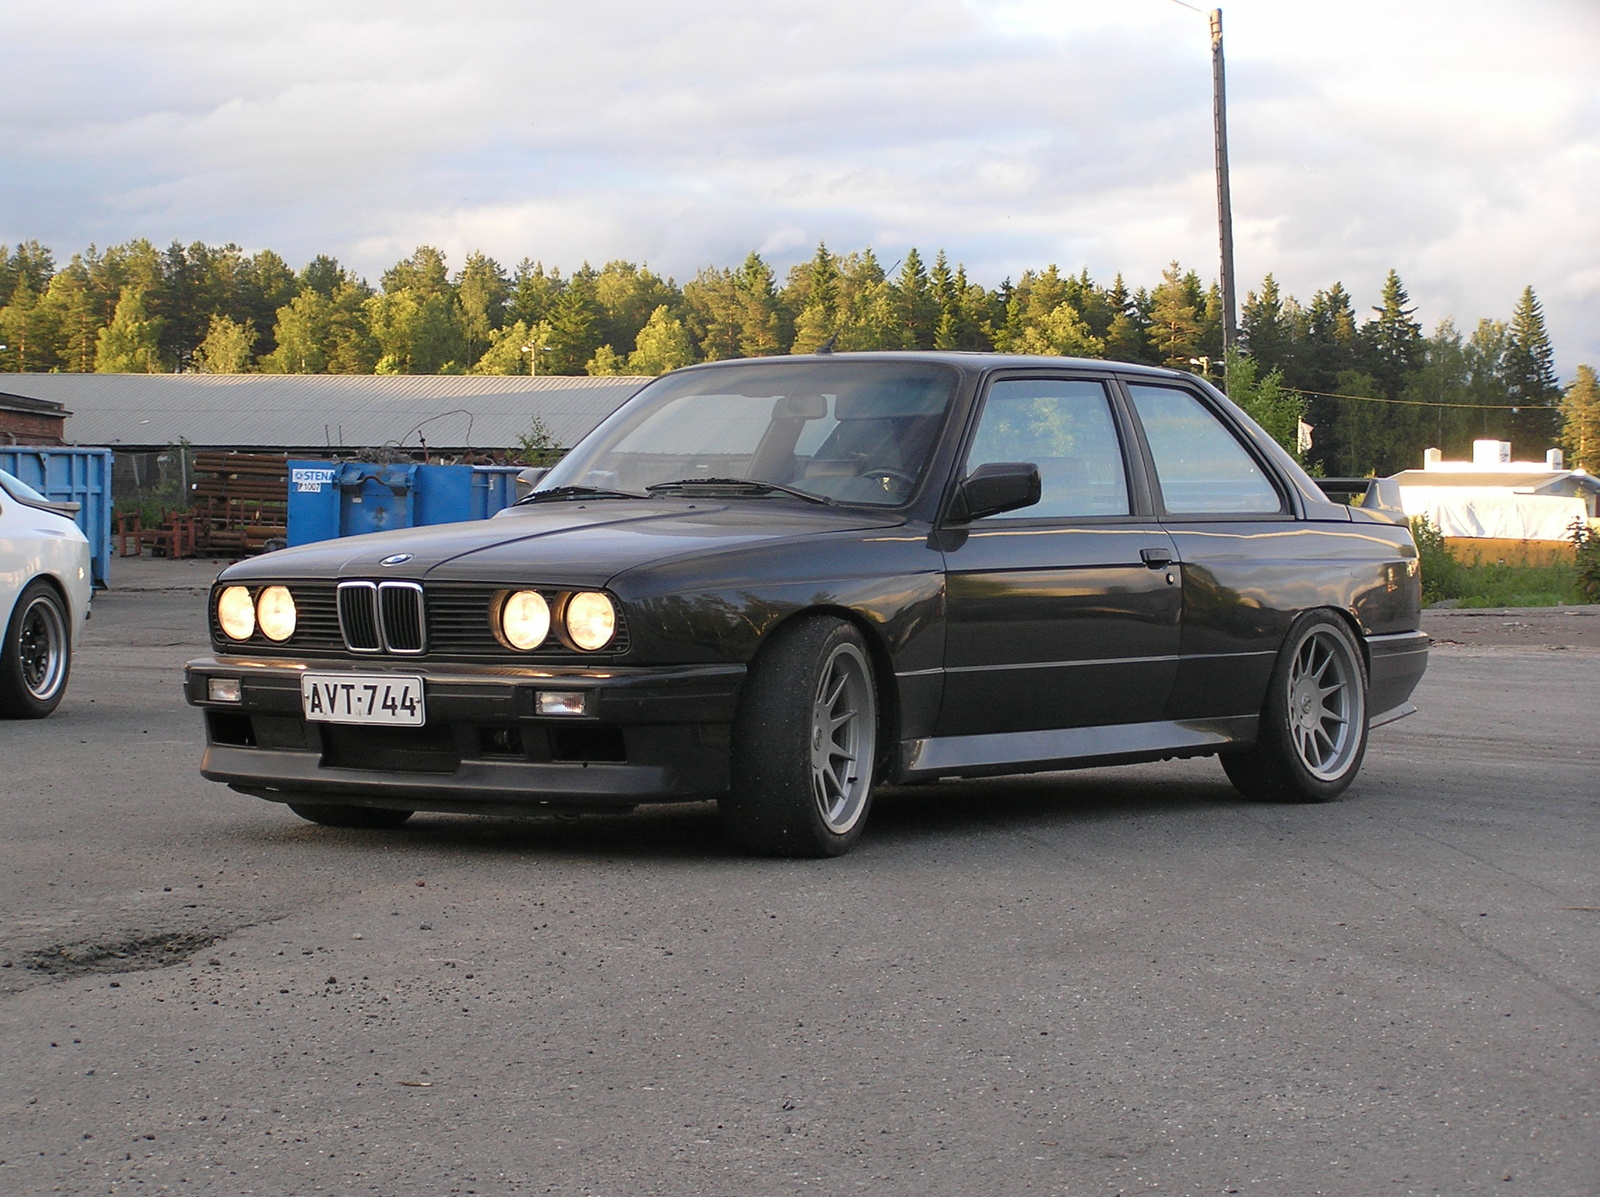 Bmw M5 1986 Review Amazing Pictures And Images Look At The Car